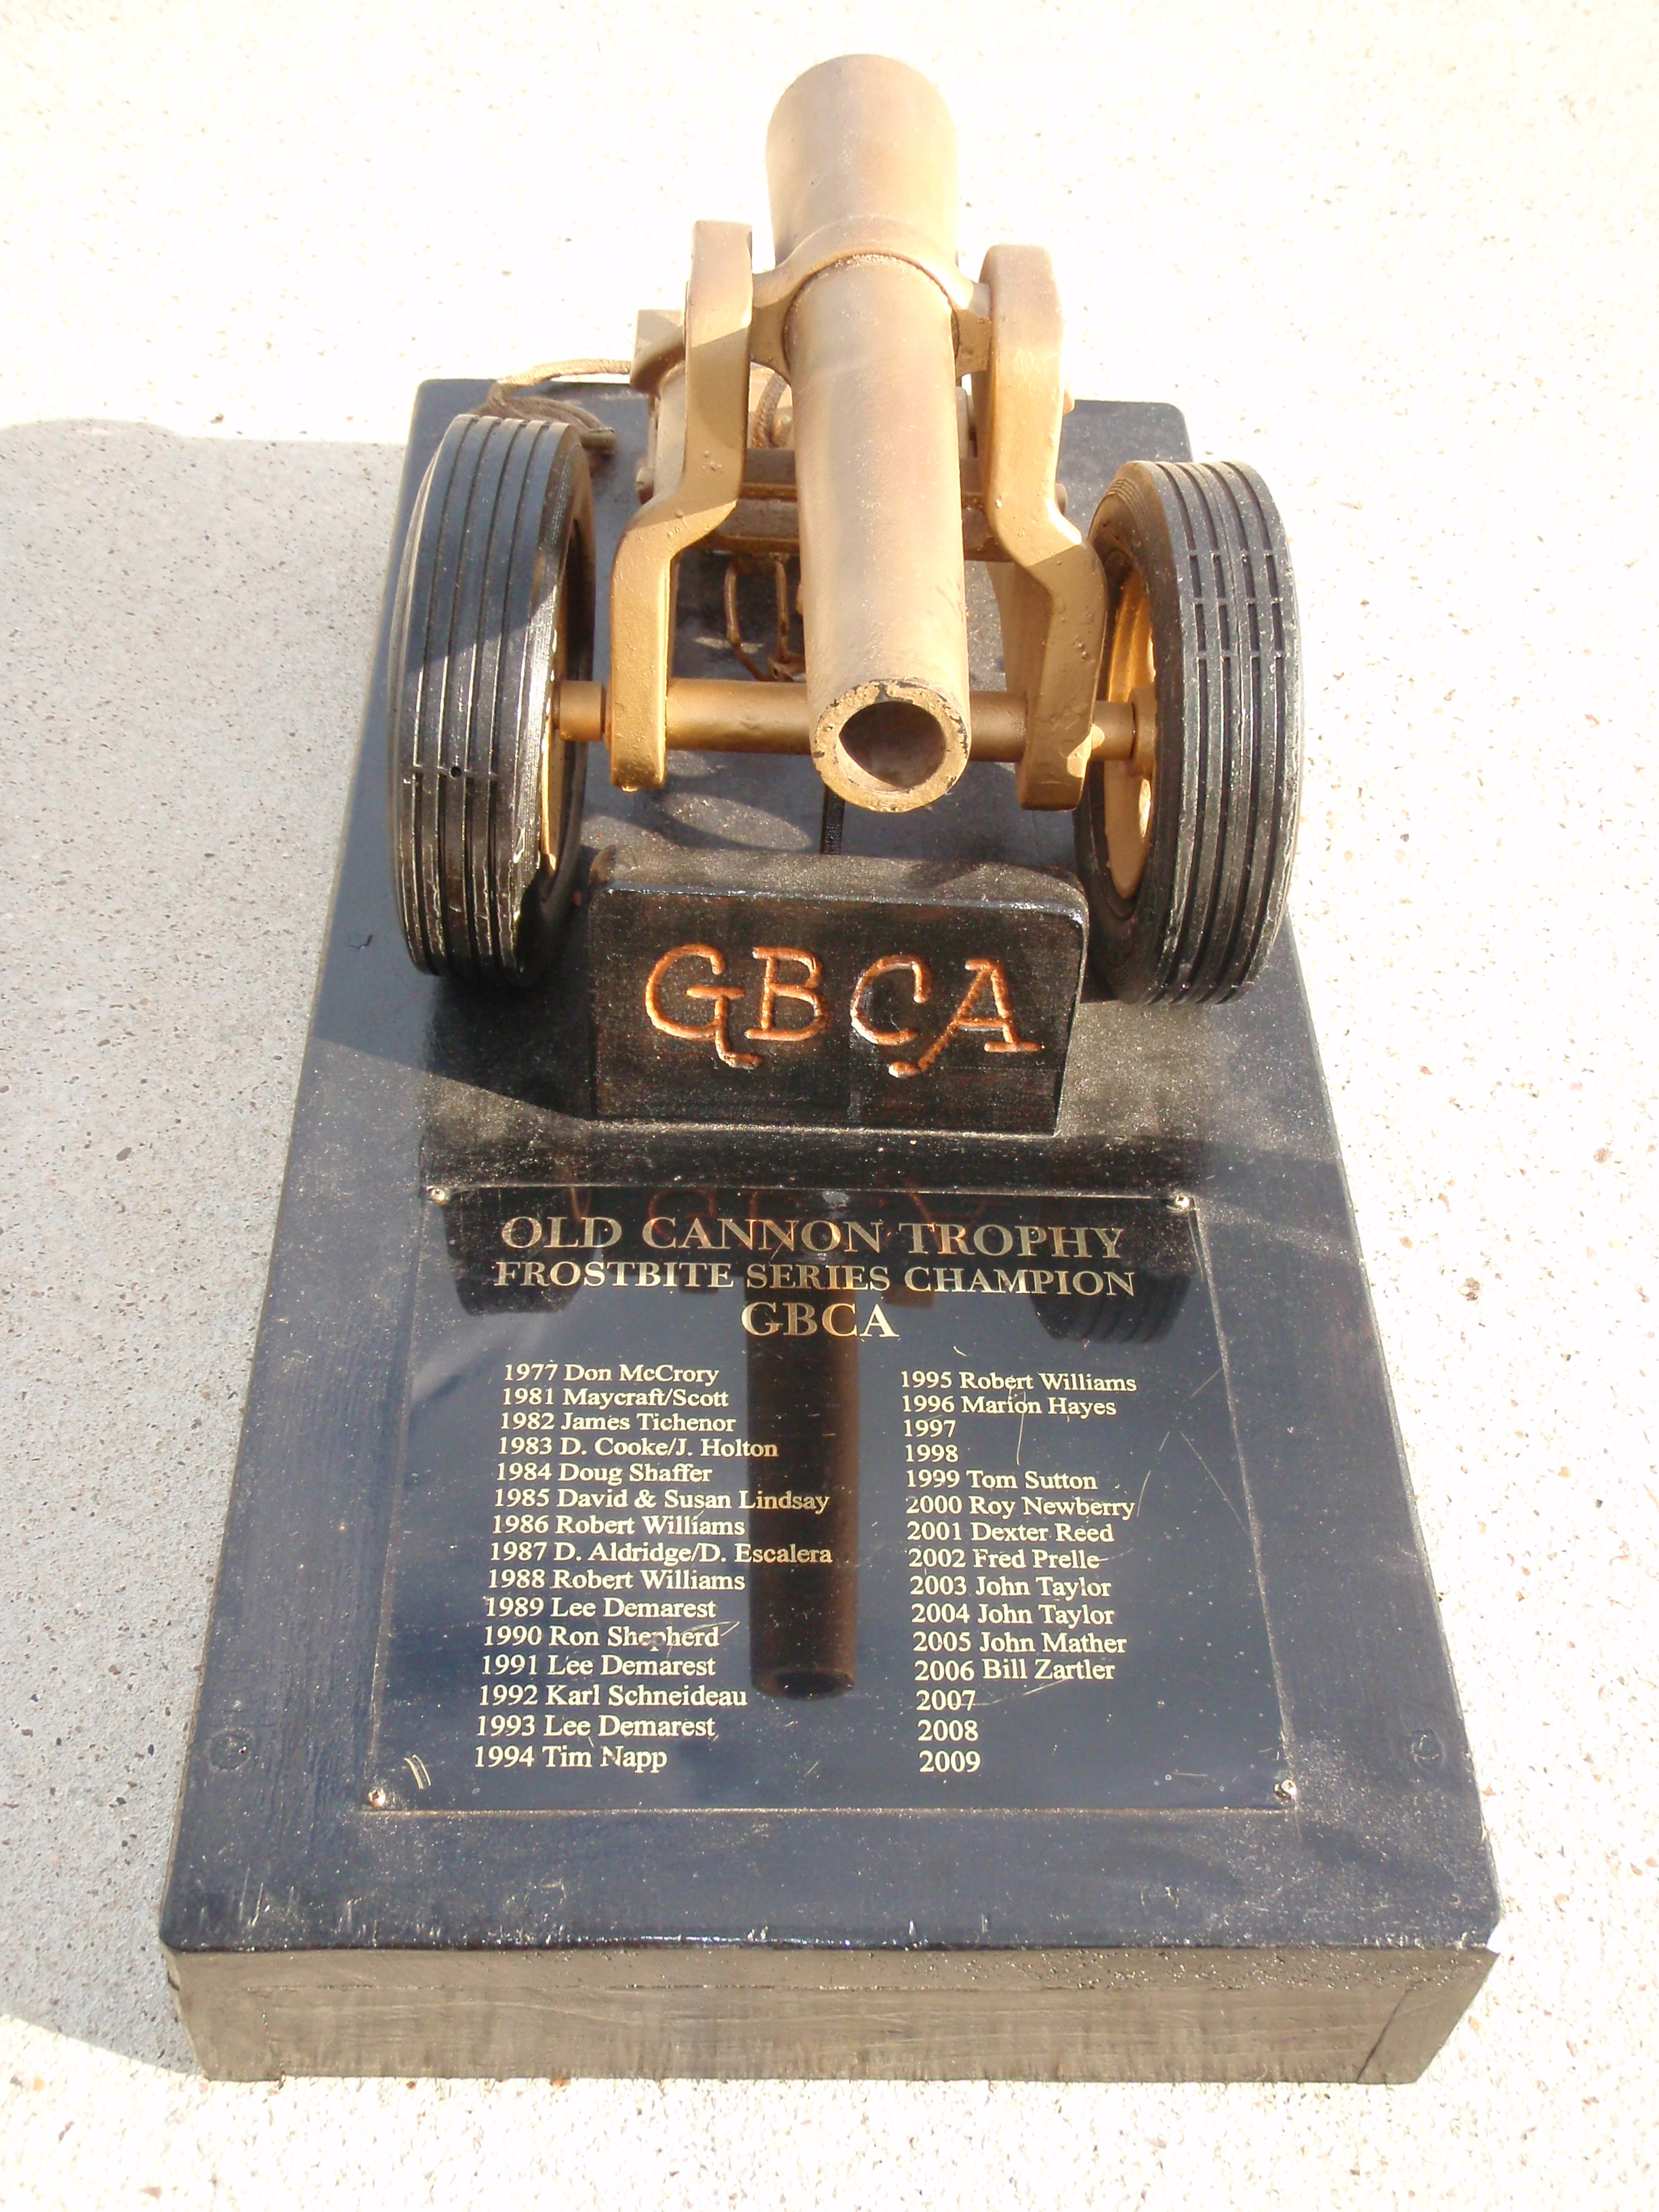 The Cannon Trophy